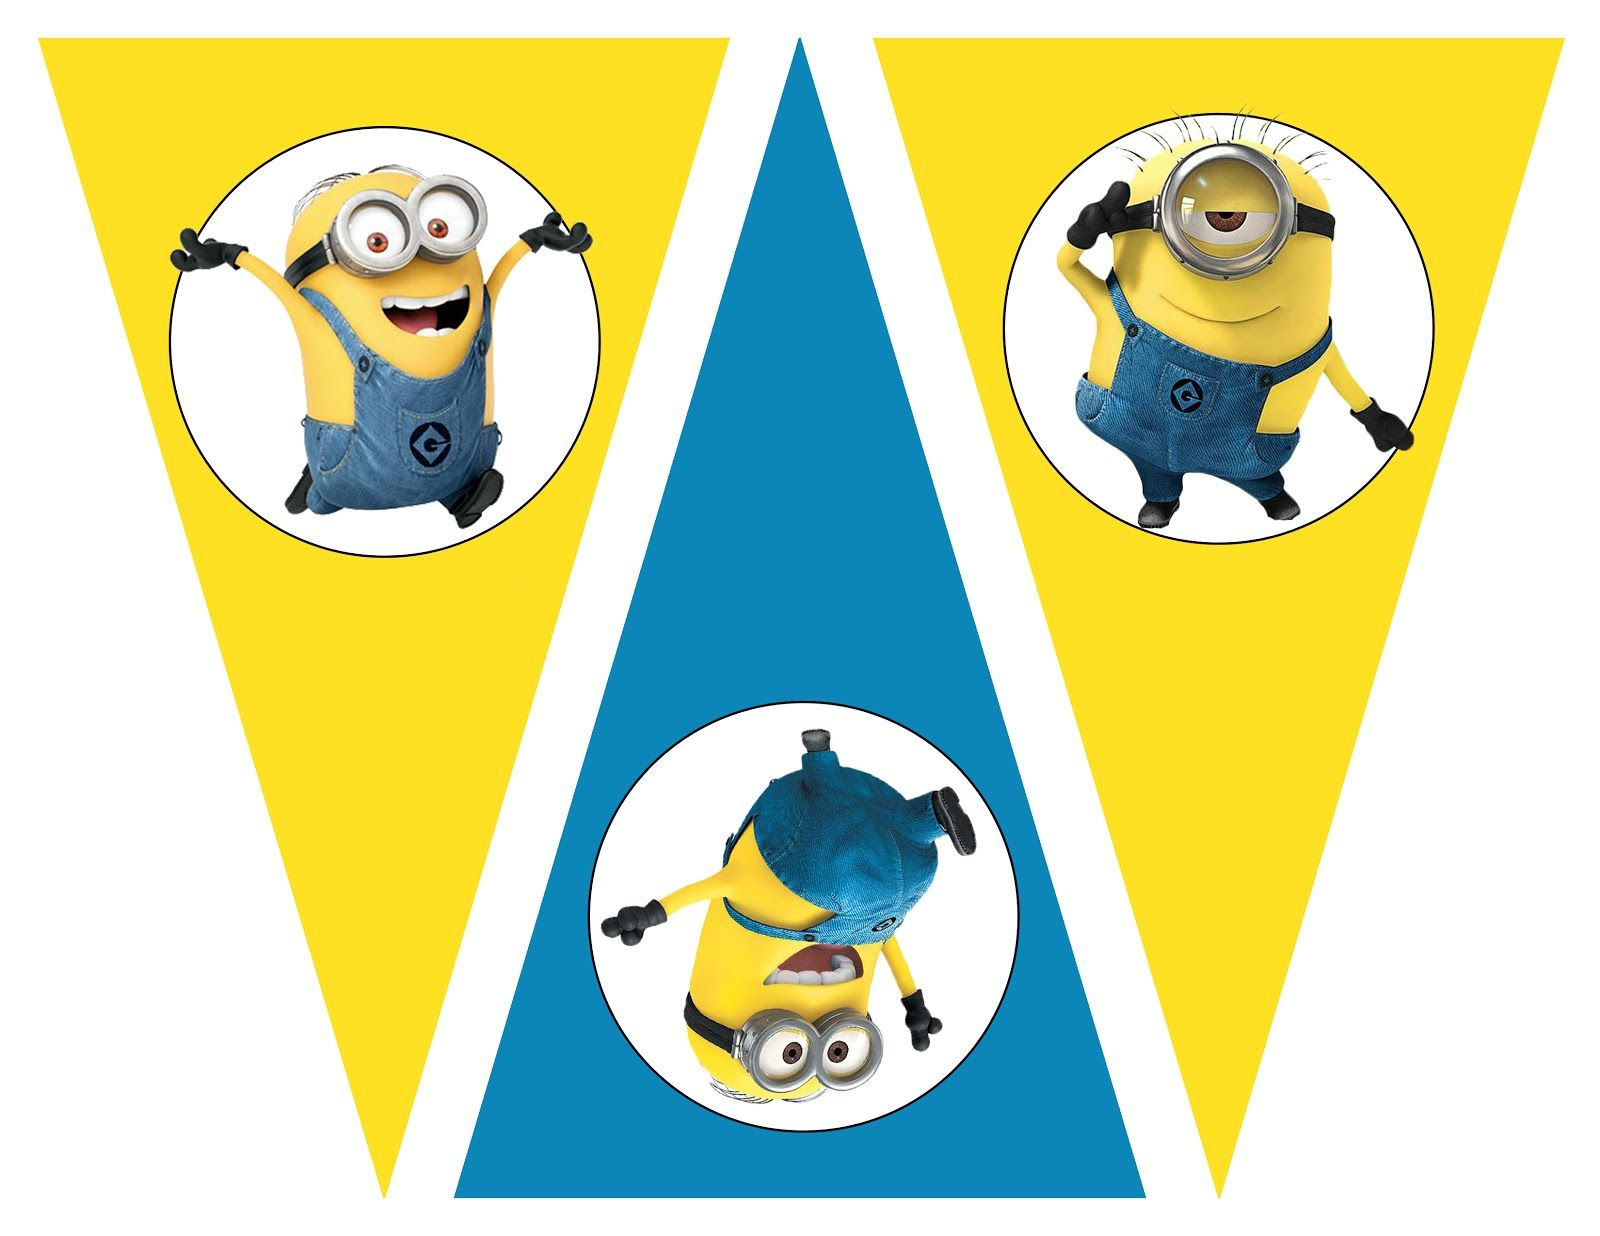 image about Minion Symbol Printable named Absolutely free Despicable me social gathering printables, birthday celebration concept